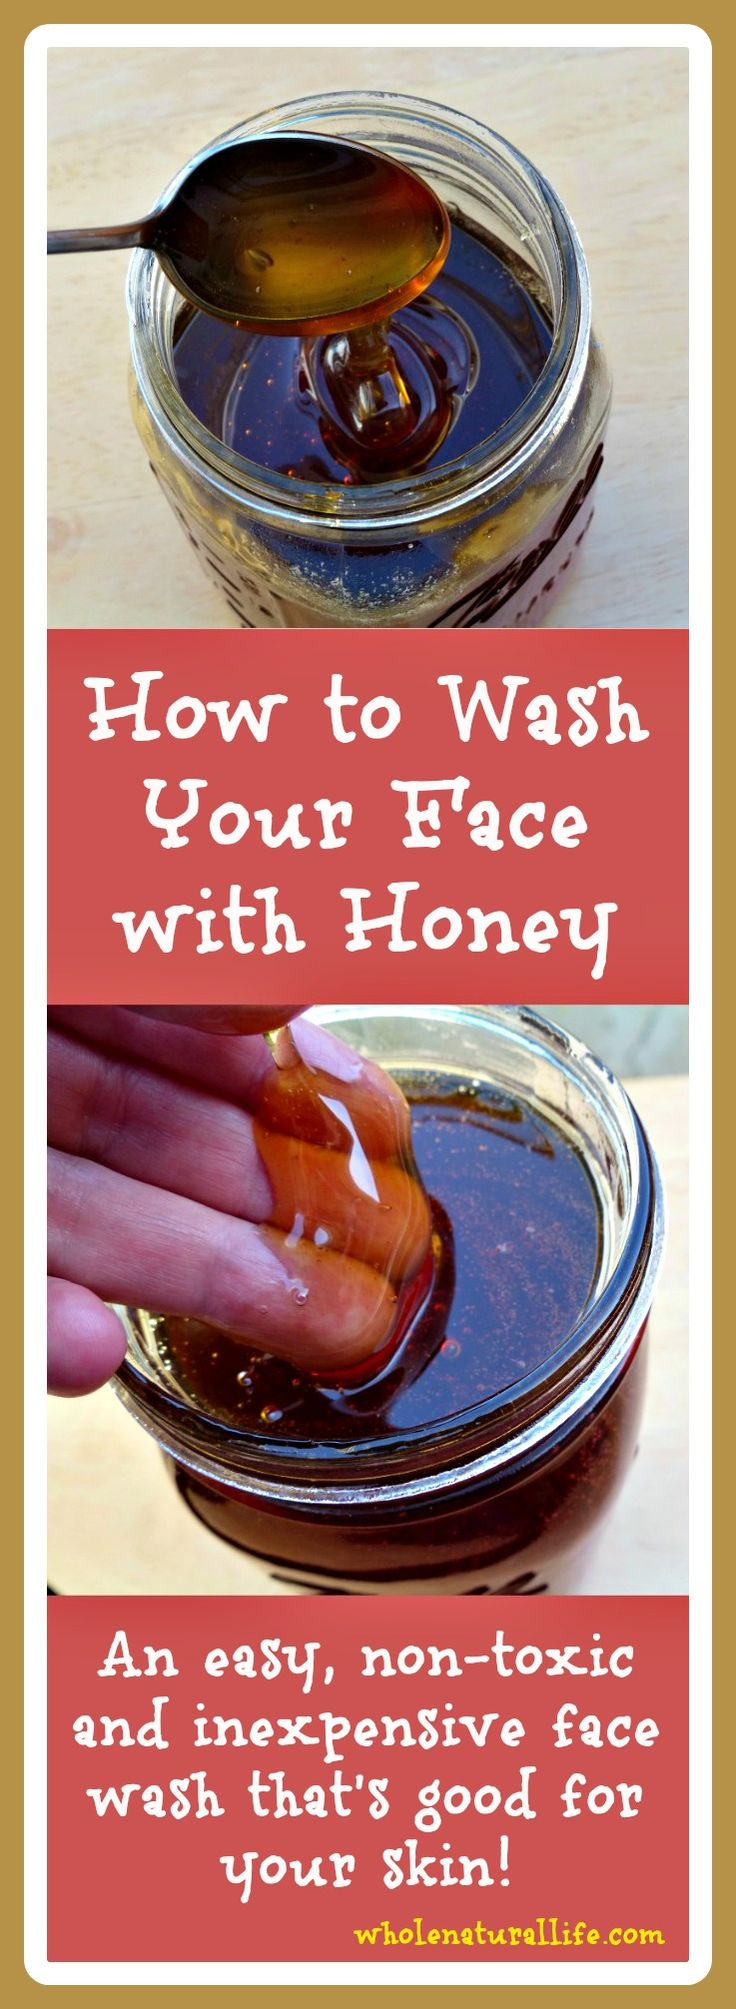 How to Wash Your Face with Honey